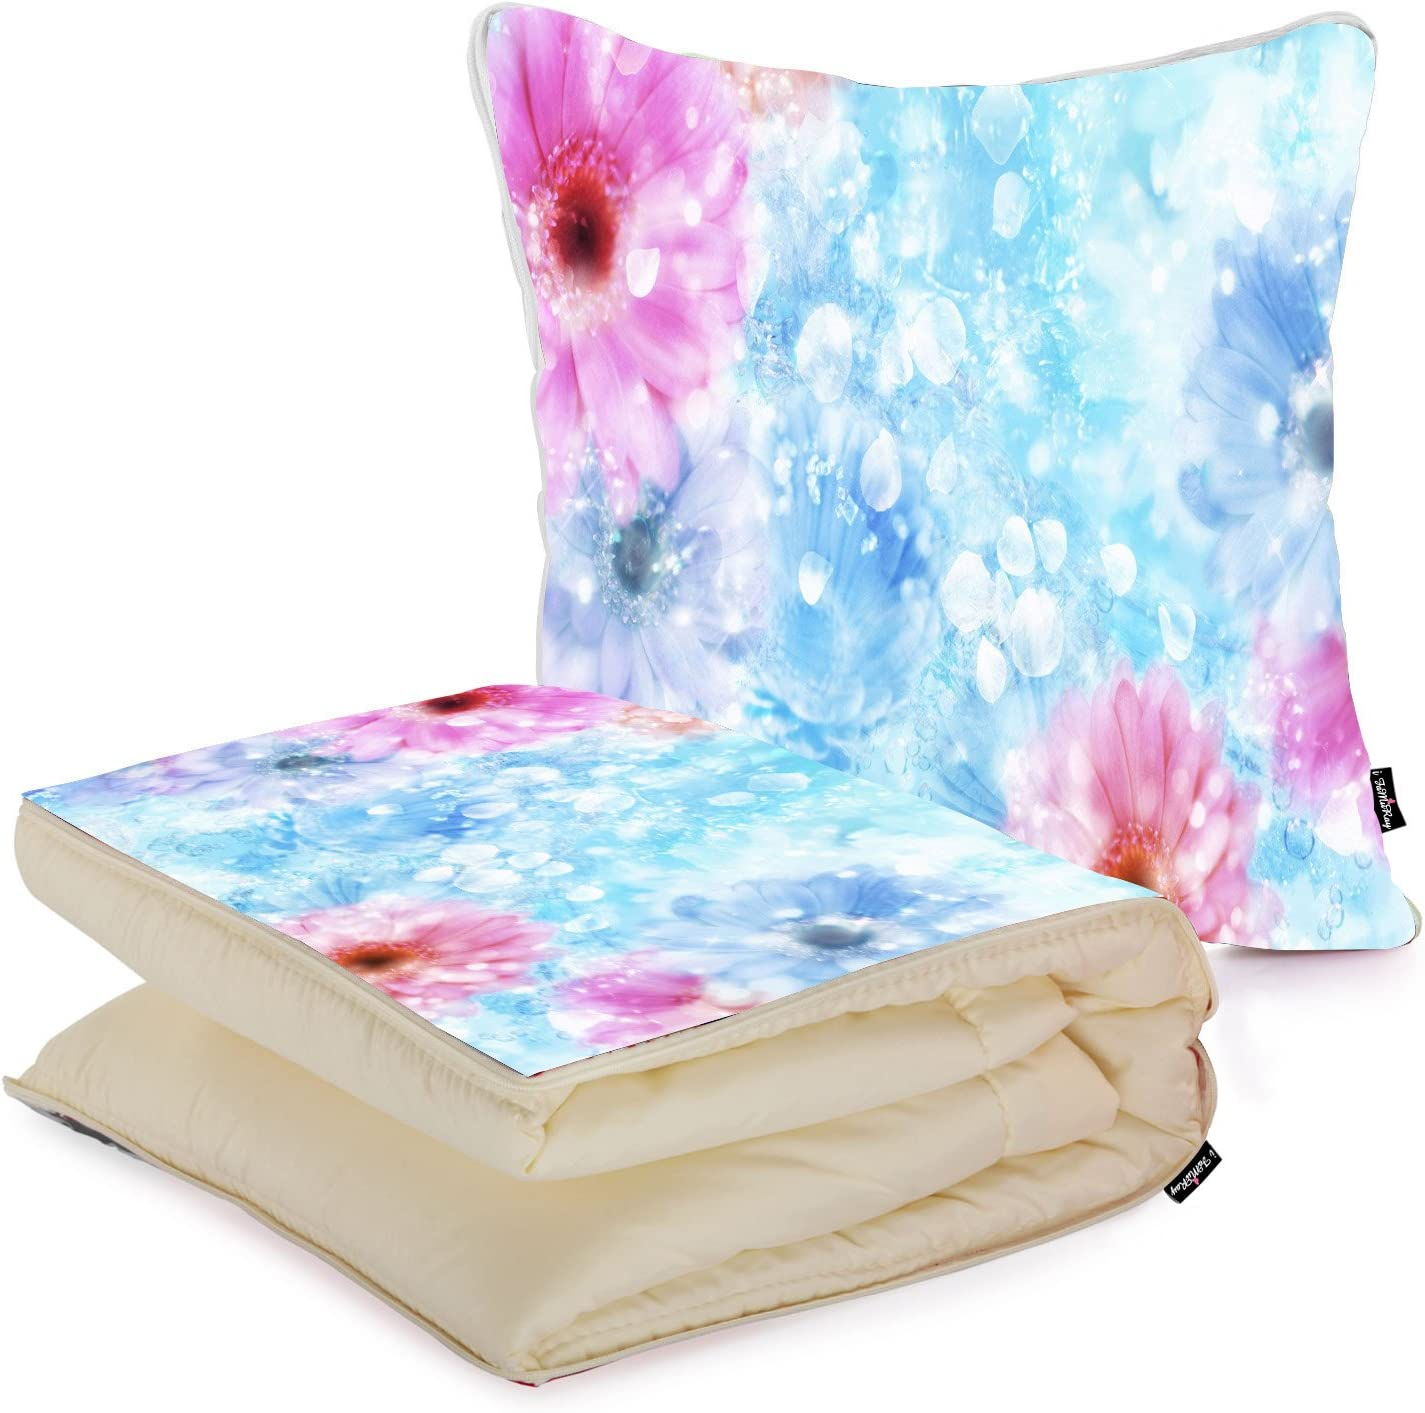 I Famuray Diy Bed Throw Pillow Travel Blanket Set Colorful